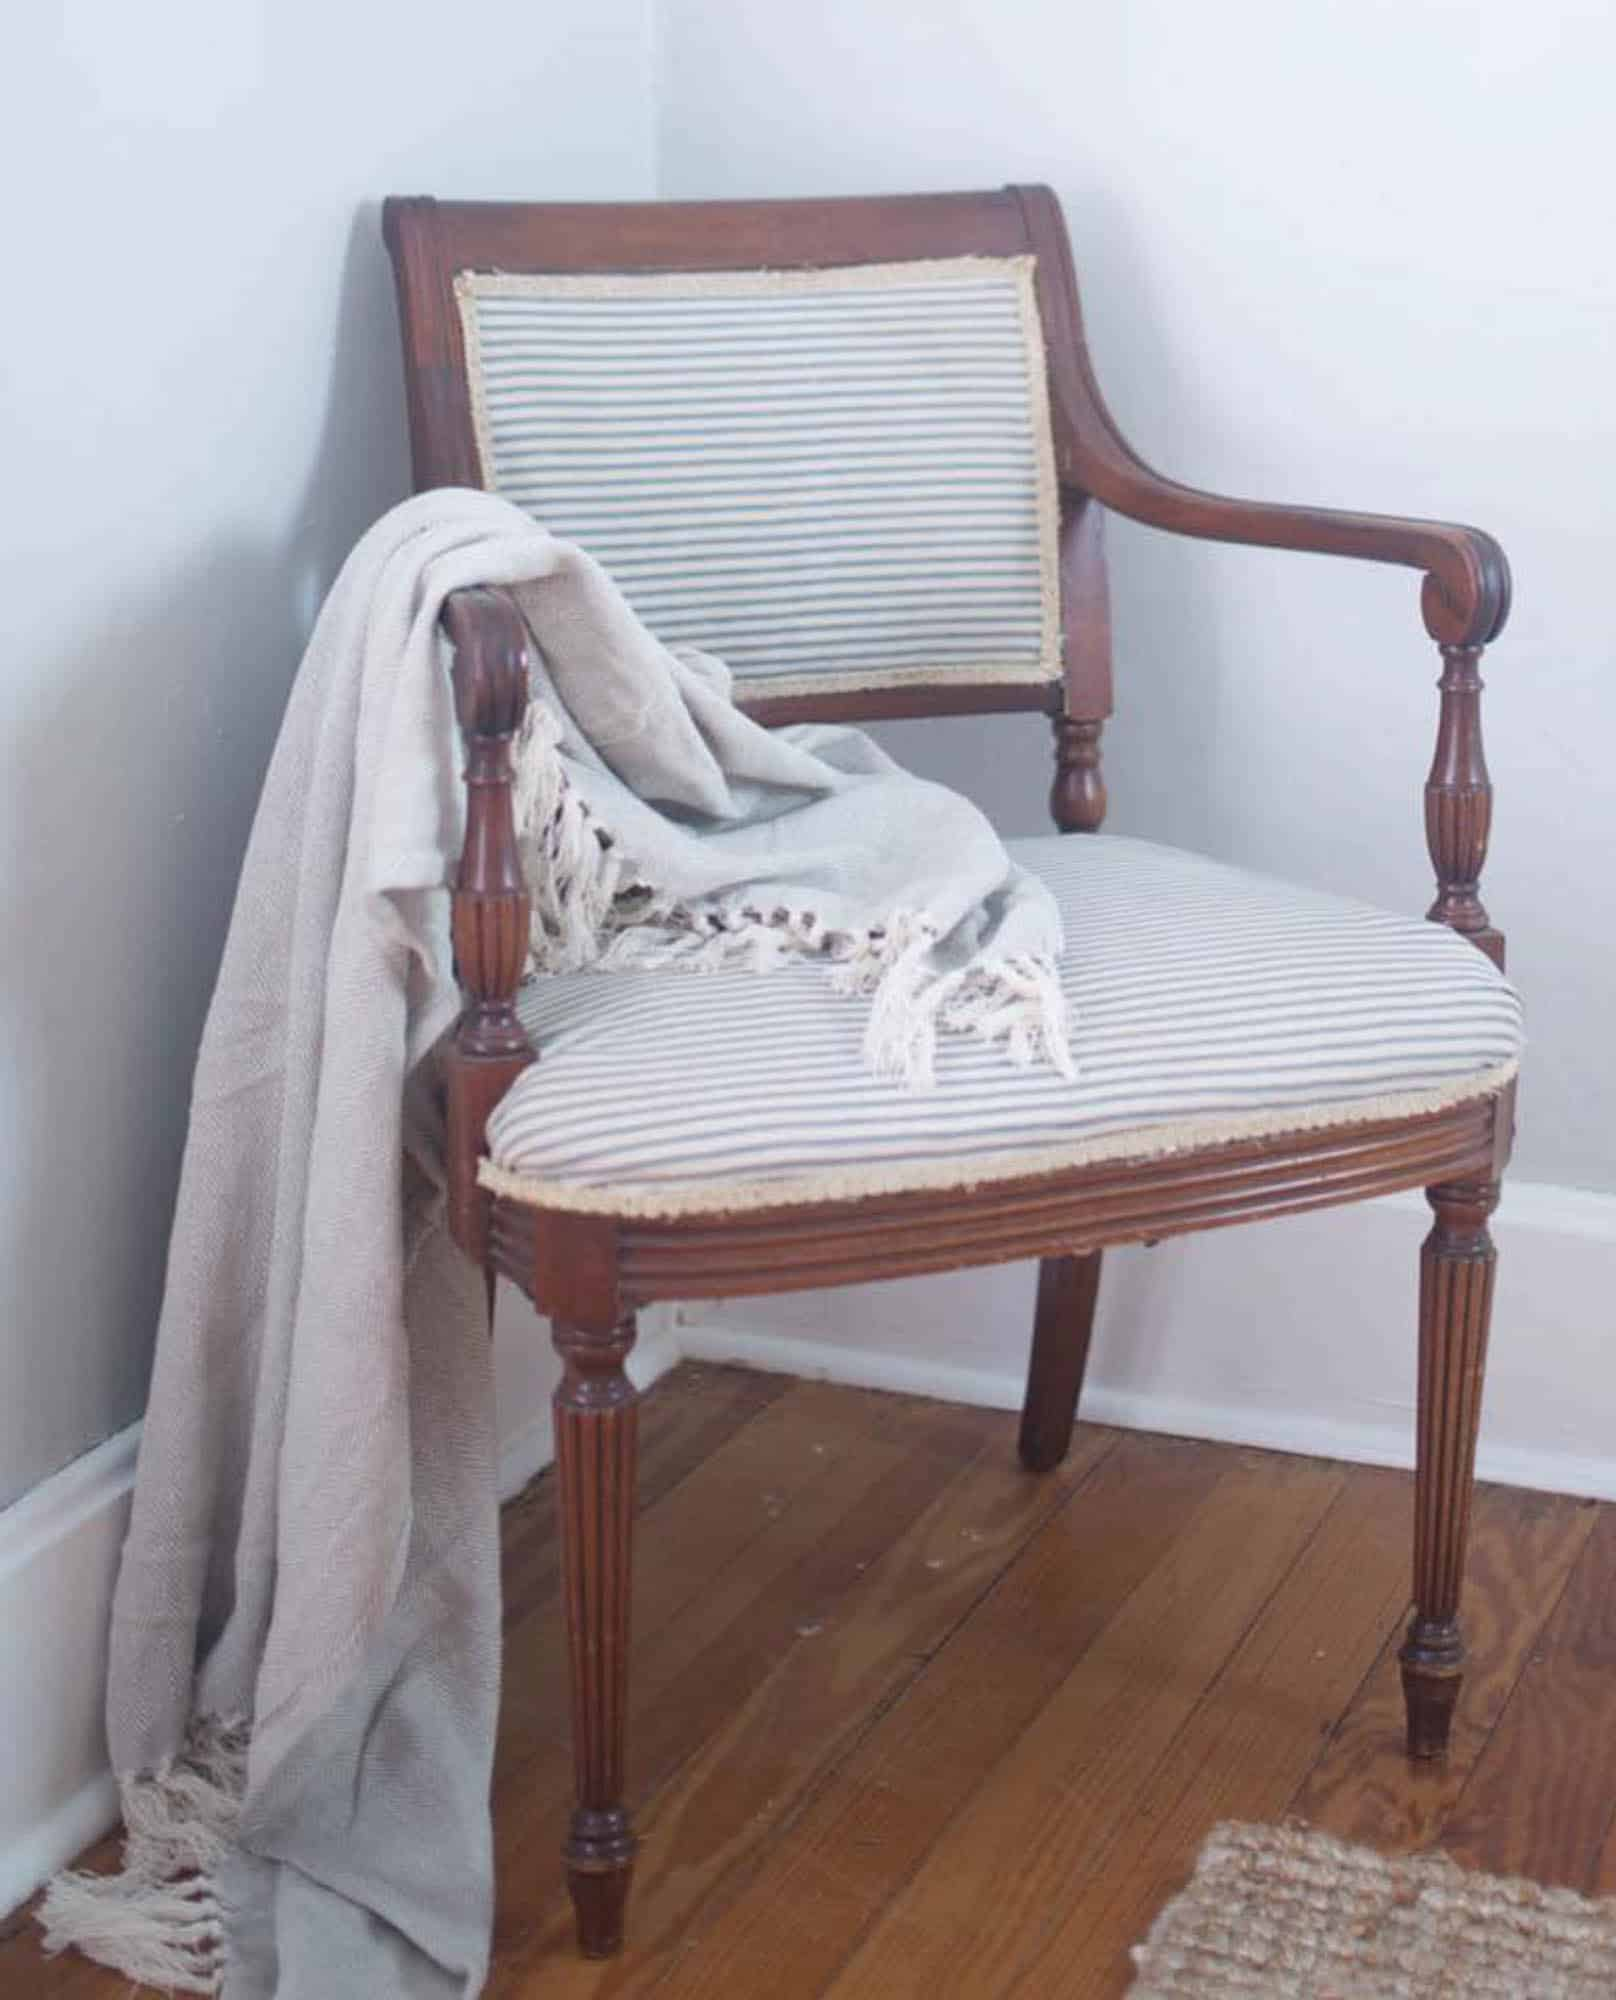 Learn how to reupholster a chair with a staple gun and hot glue. No sewing required.